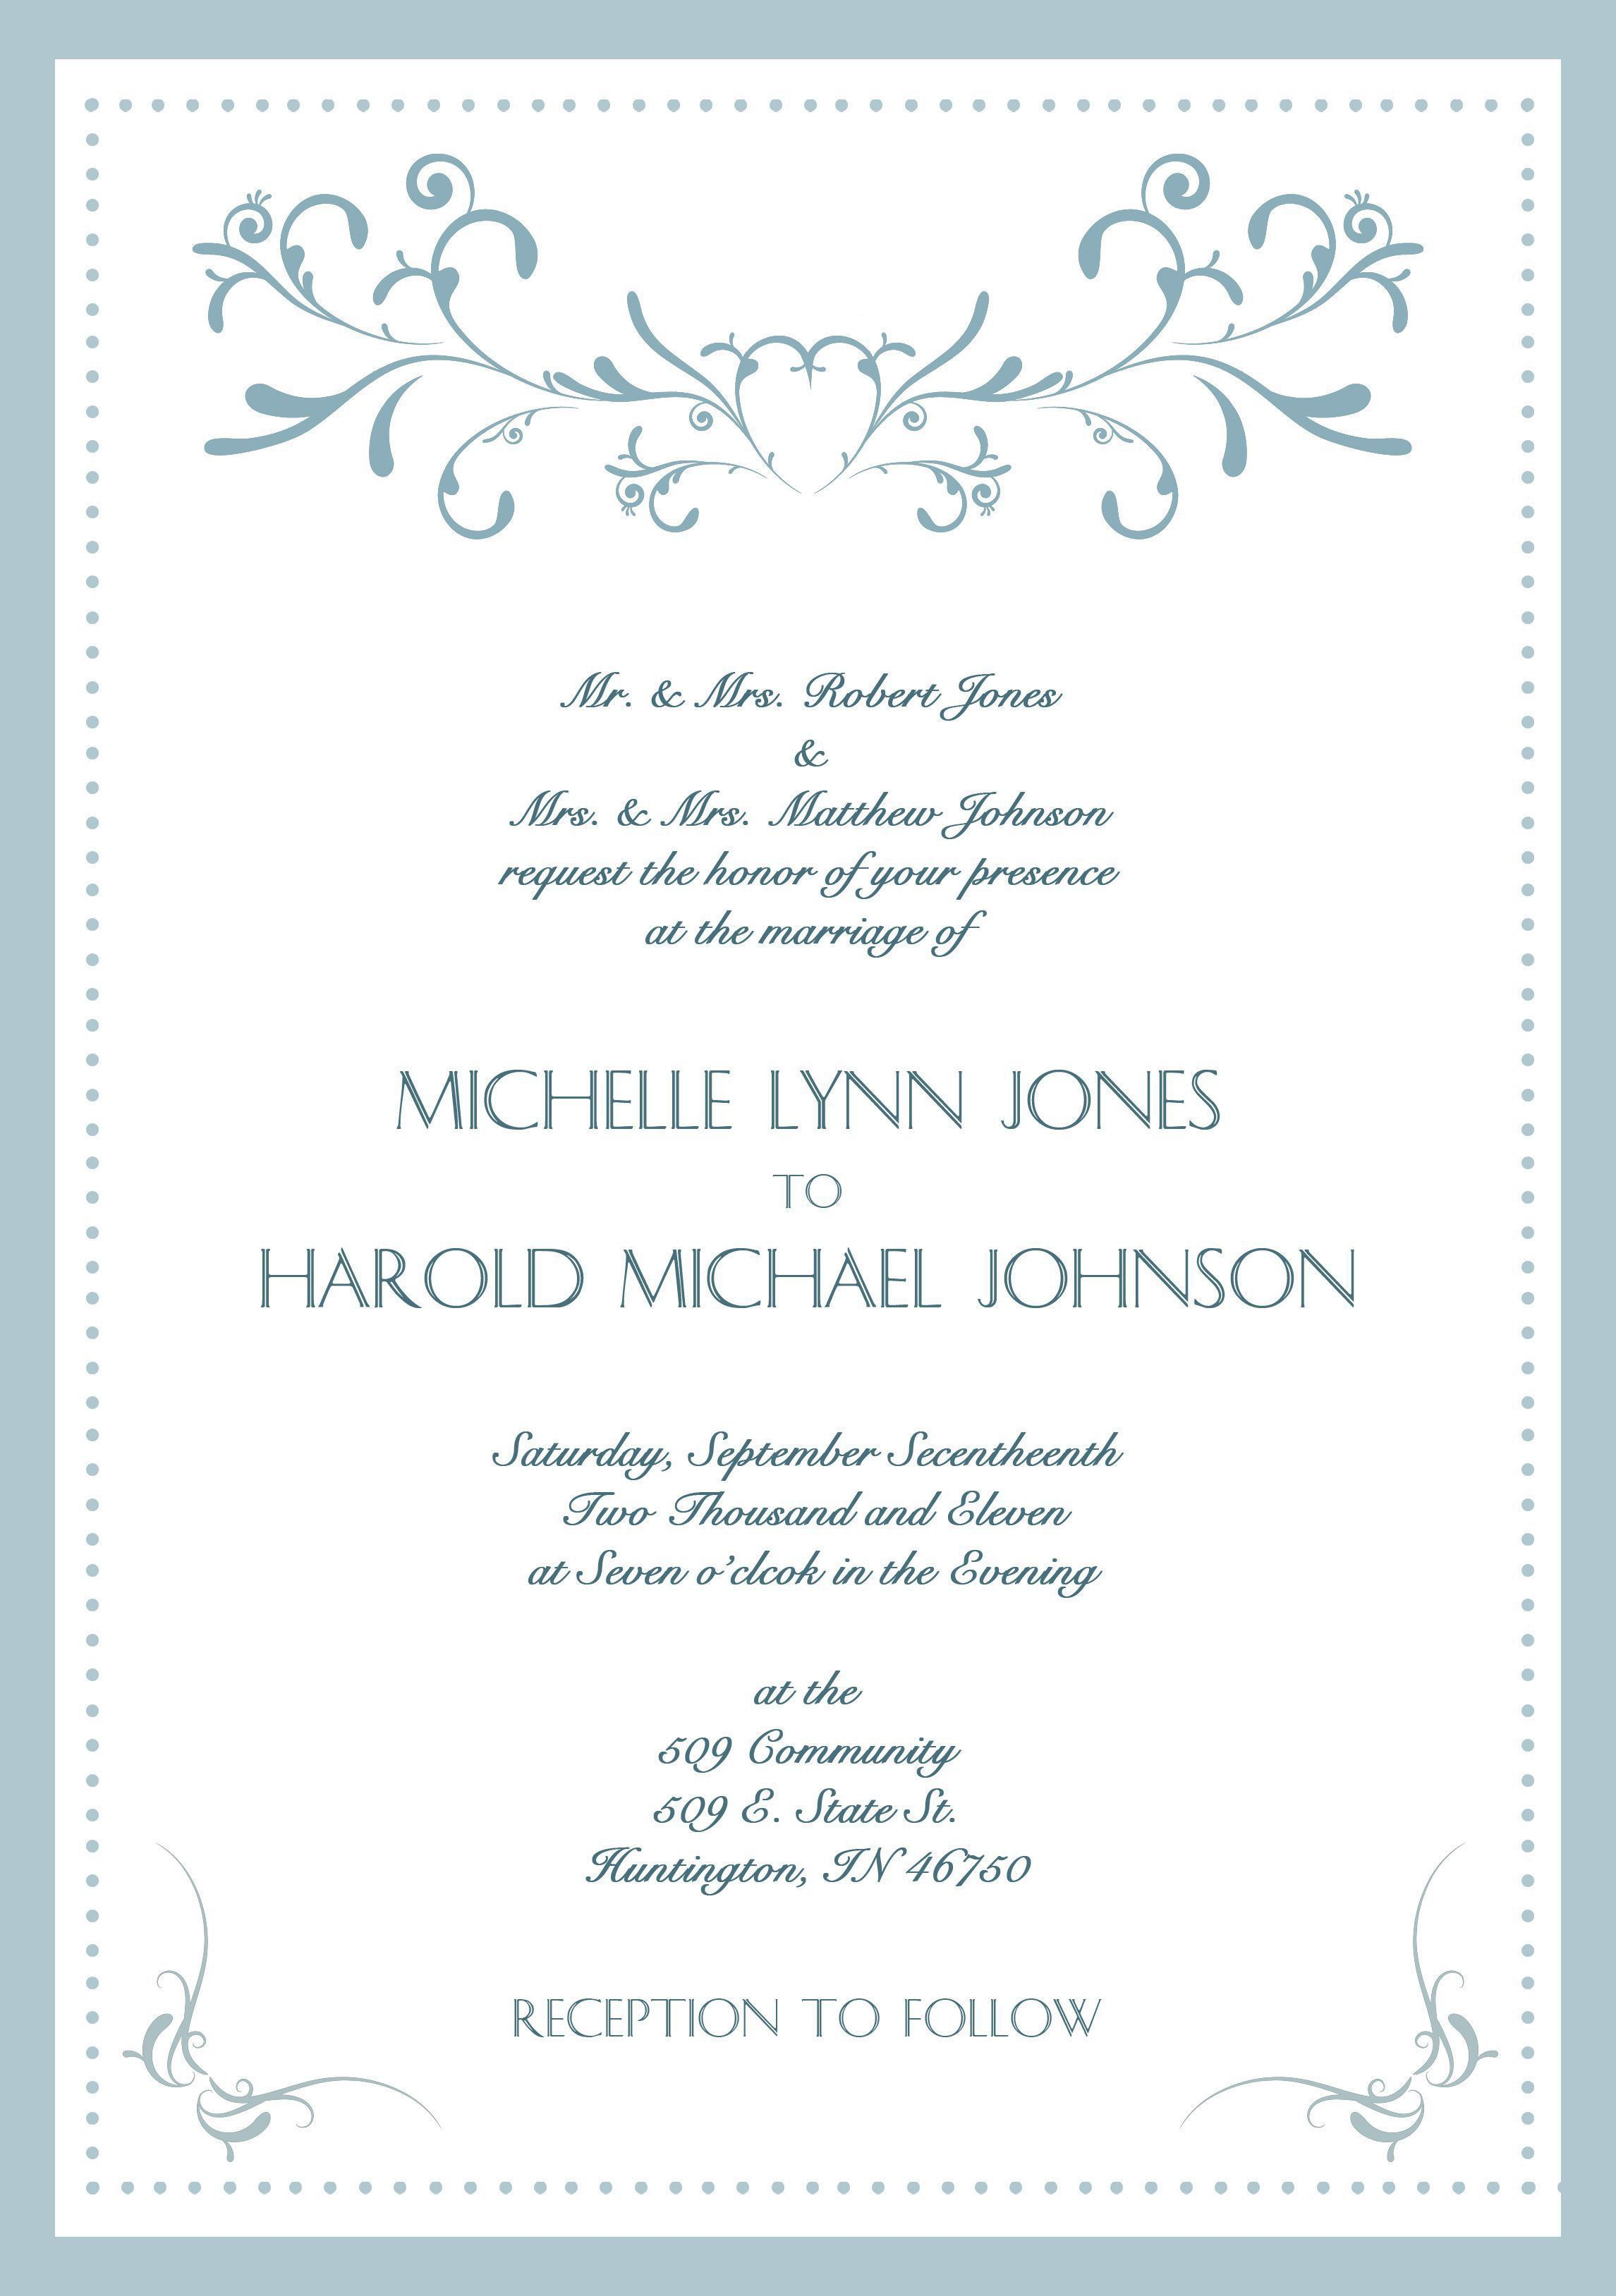 SampleWeddingInvitationCardsInEnglish  Wedding Invitations